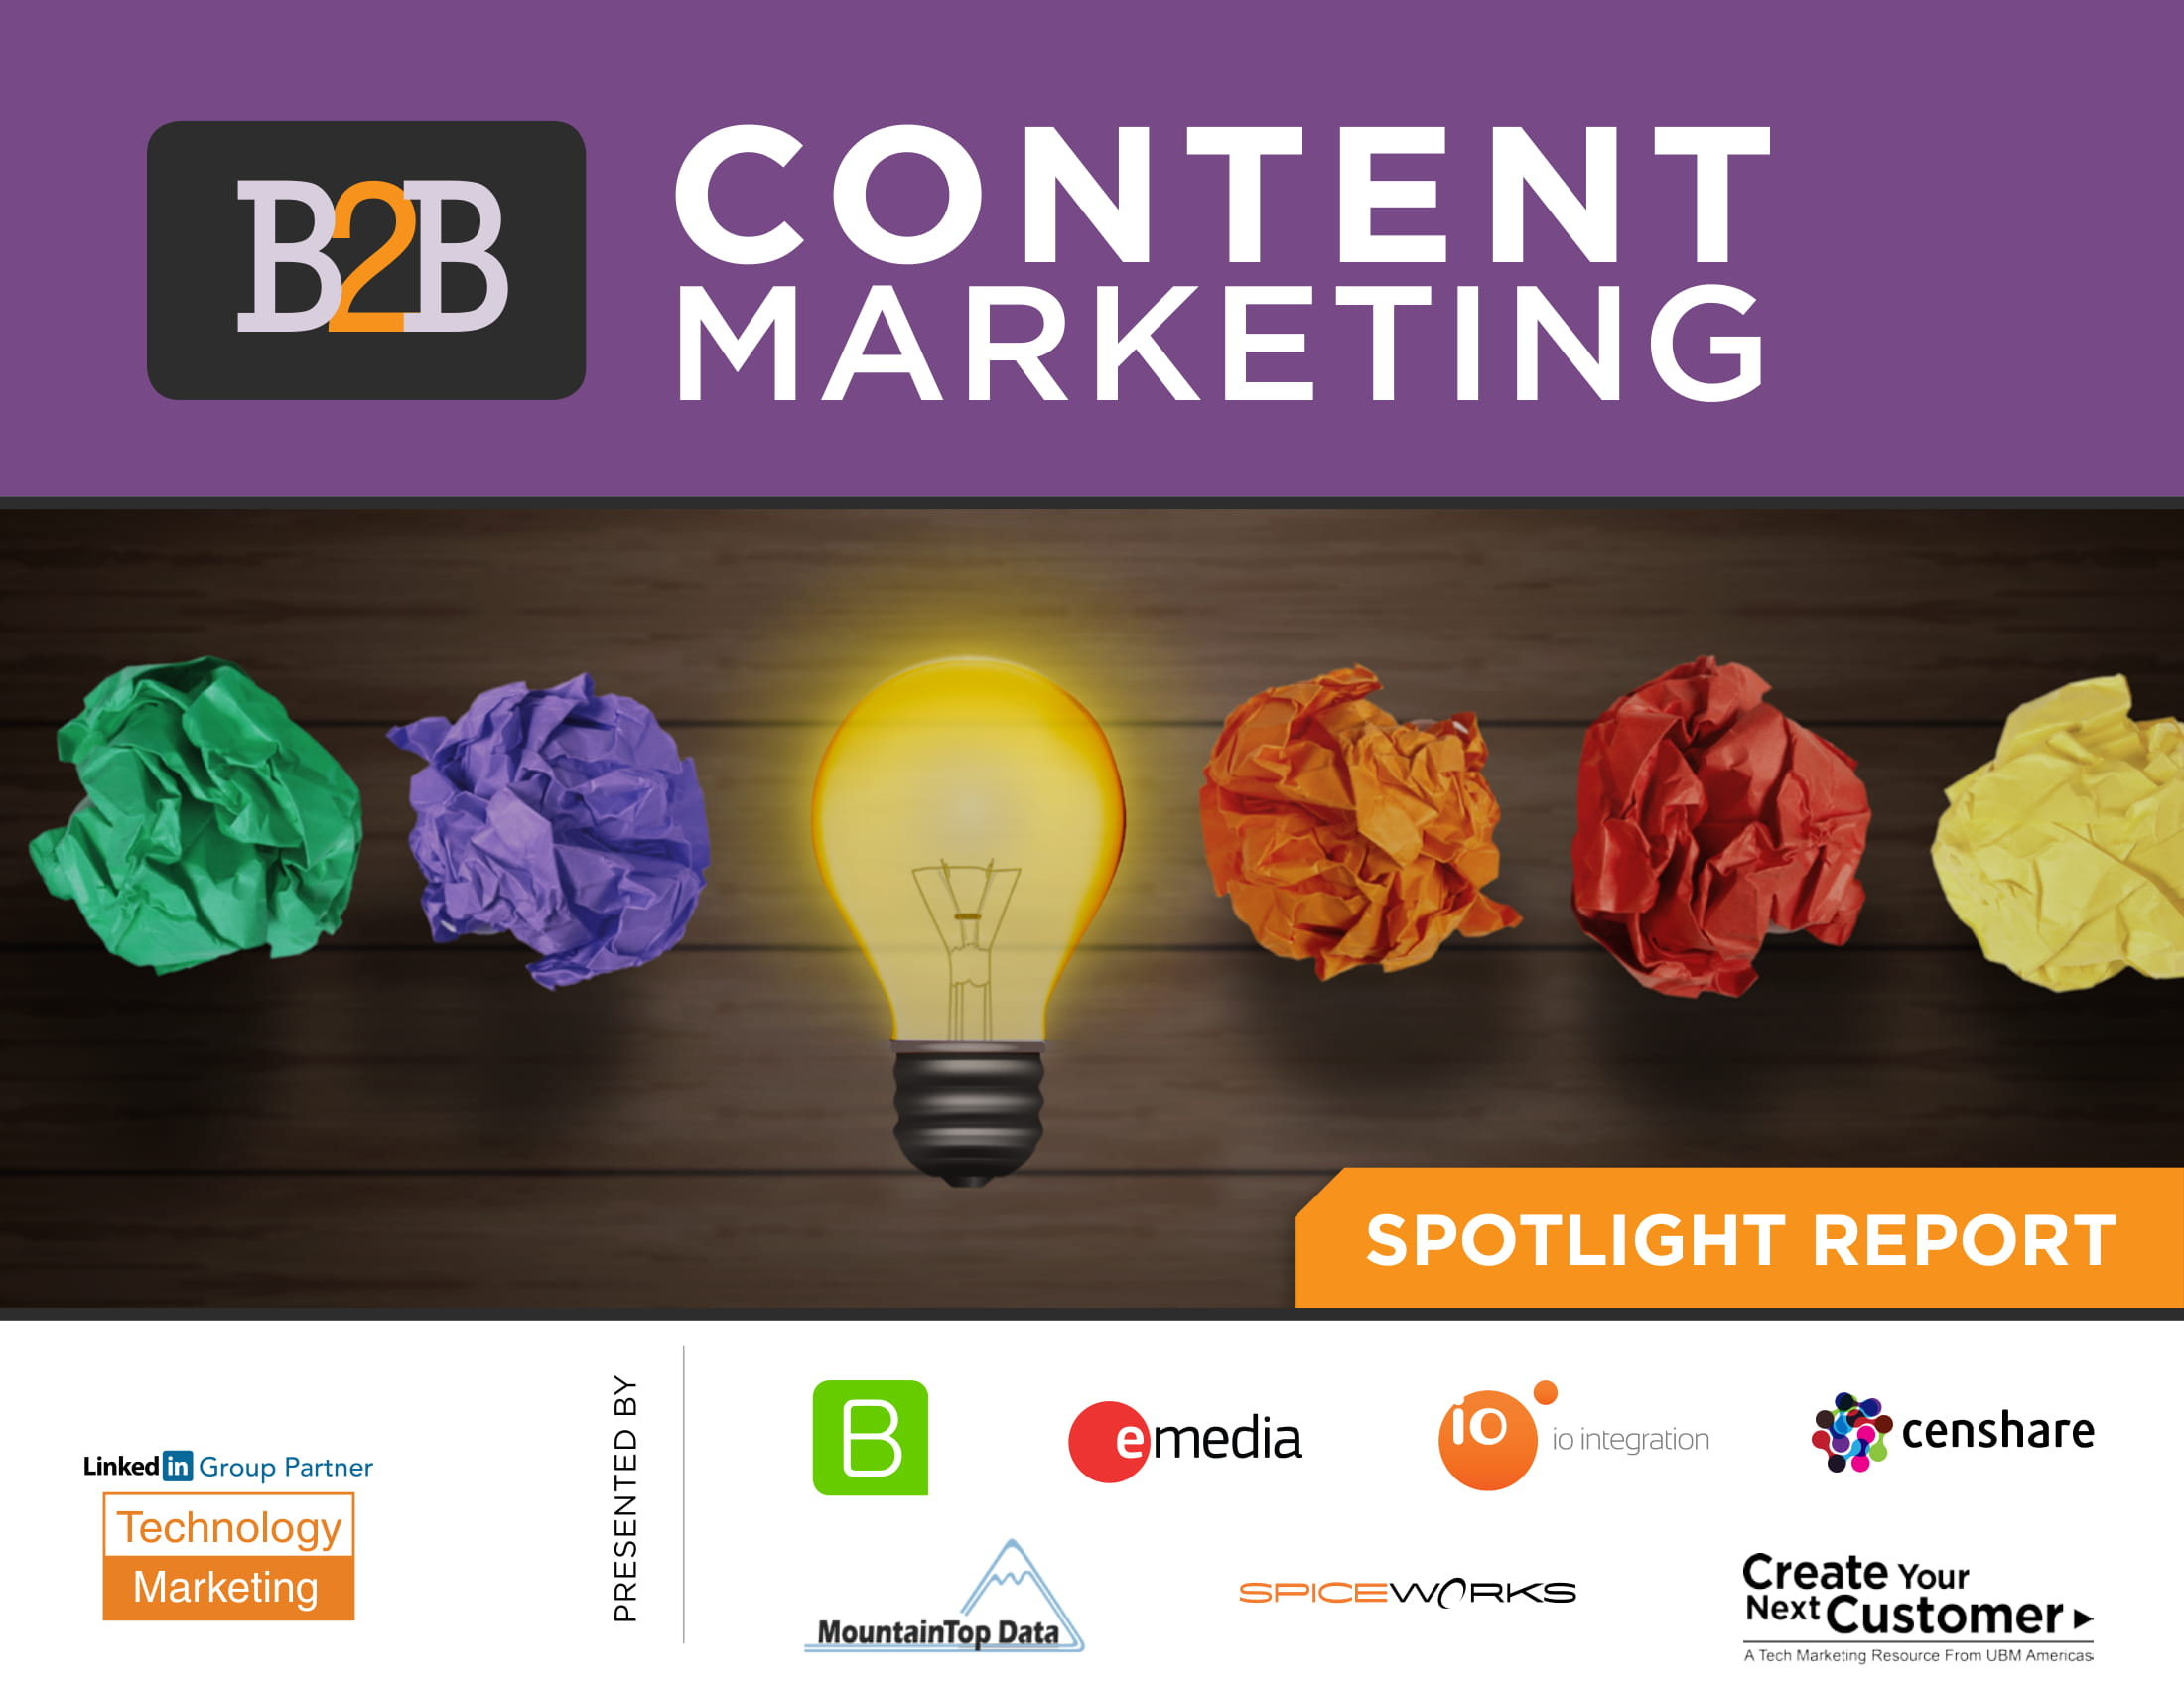 b2b content marketing business plan example 01